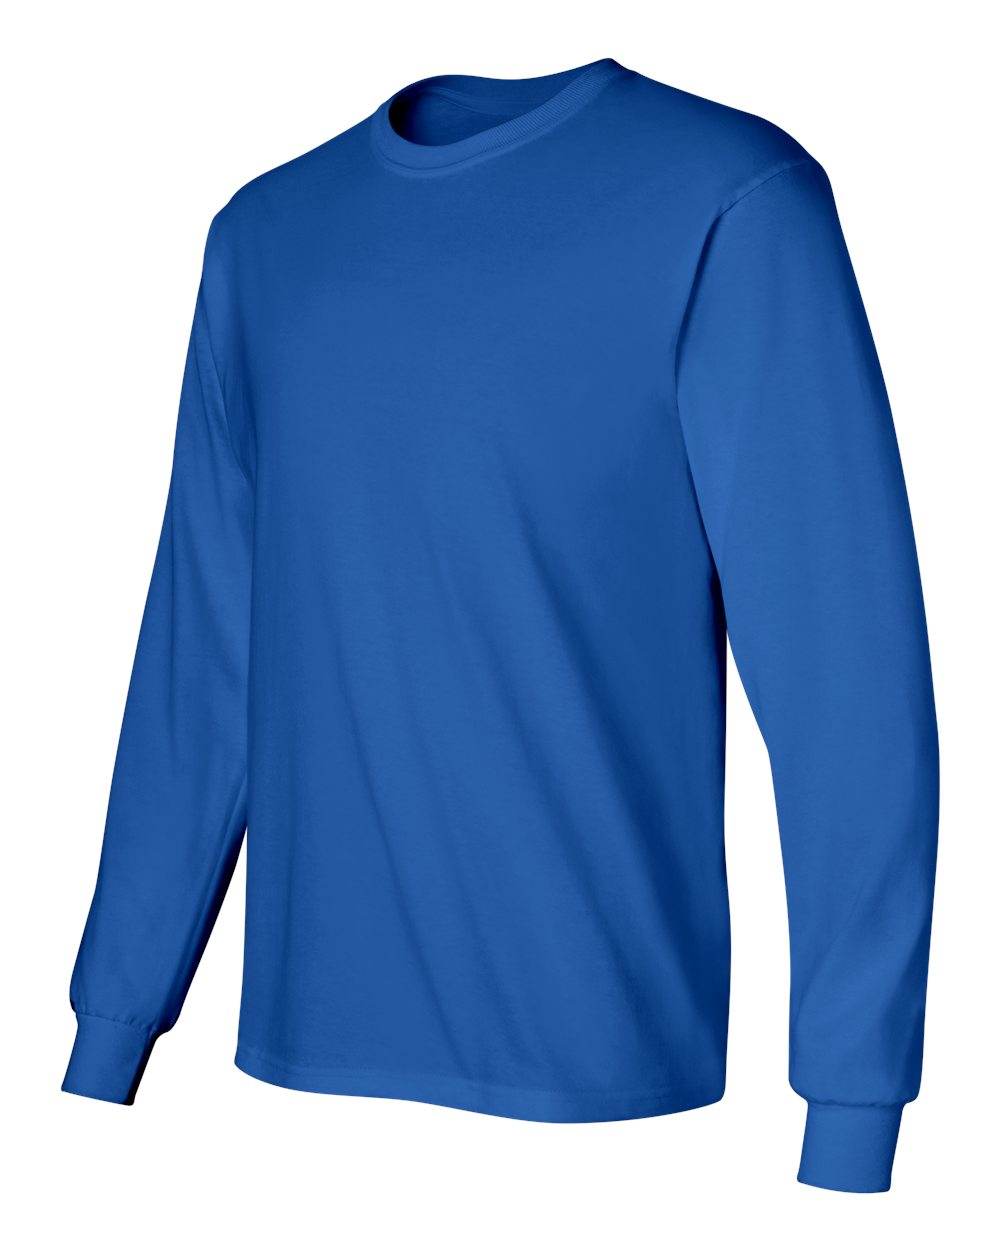 Gildan-Men-039-s-Ultra-Cotton-6-oz-Long-Sleeve-T-Shirt-G240-S-5XL thumbnail 83